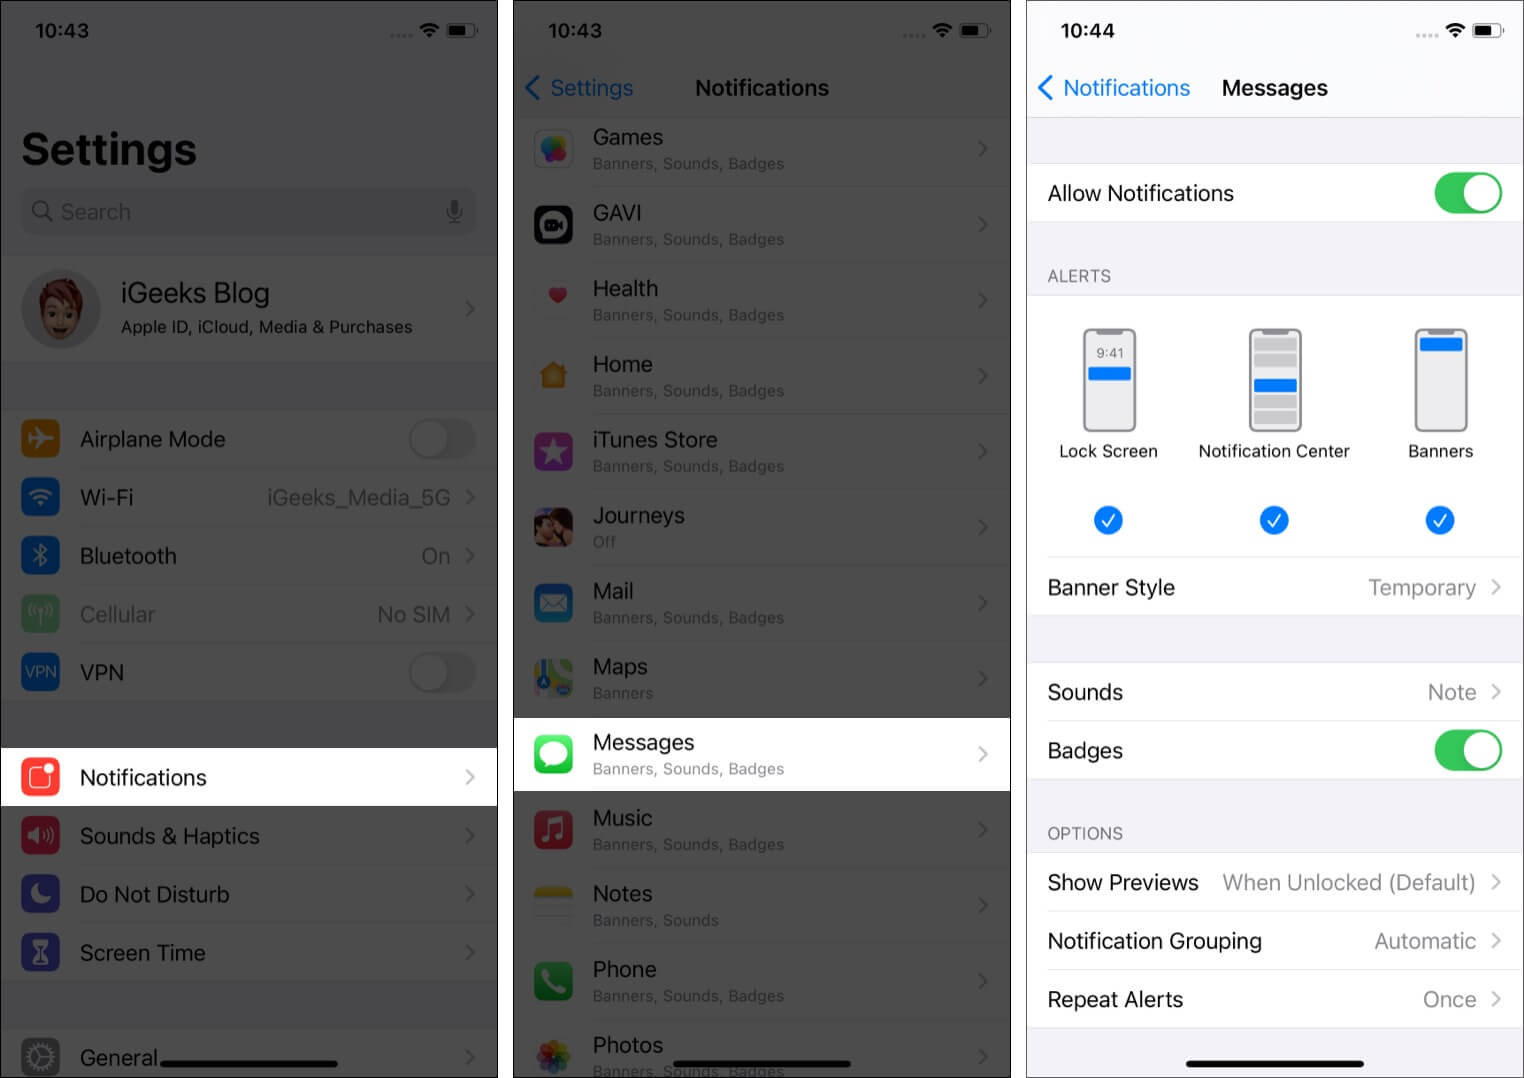 Check Messages app notification settings